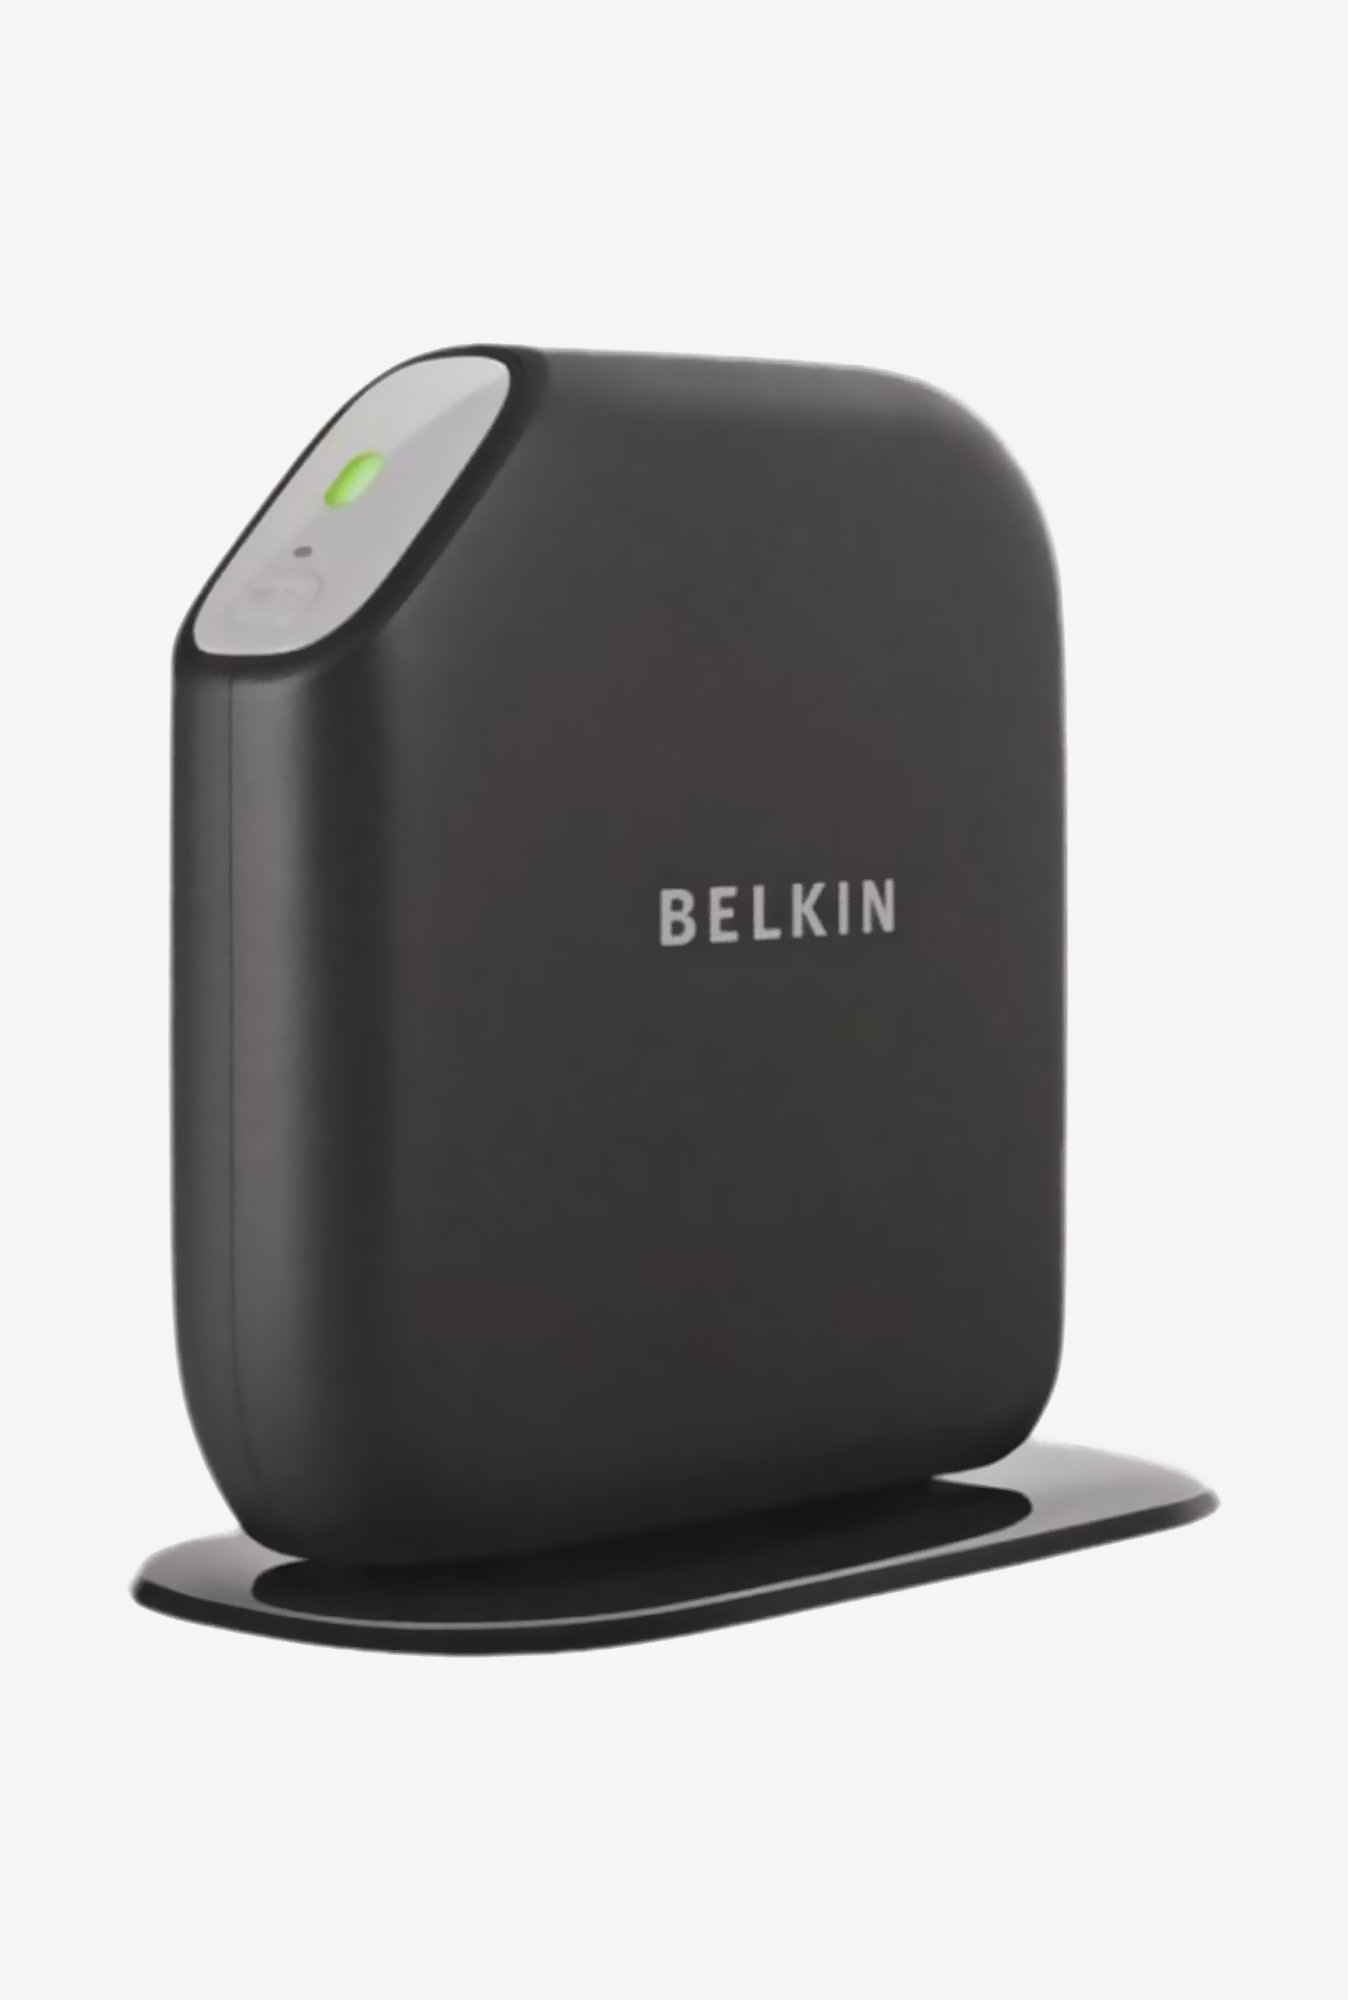 Belkin Surf N300 Router Black